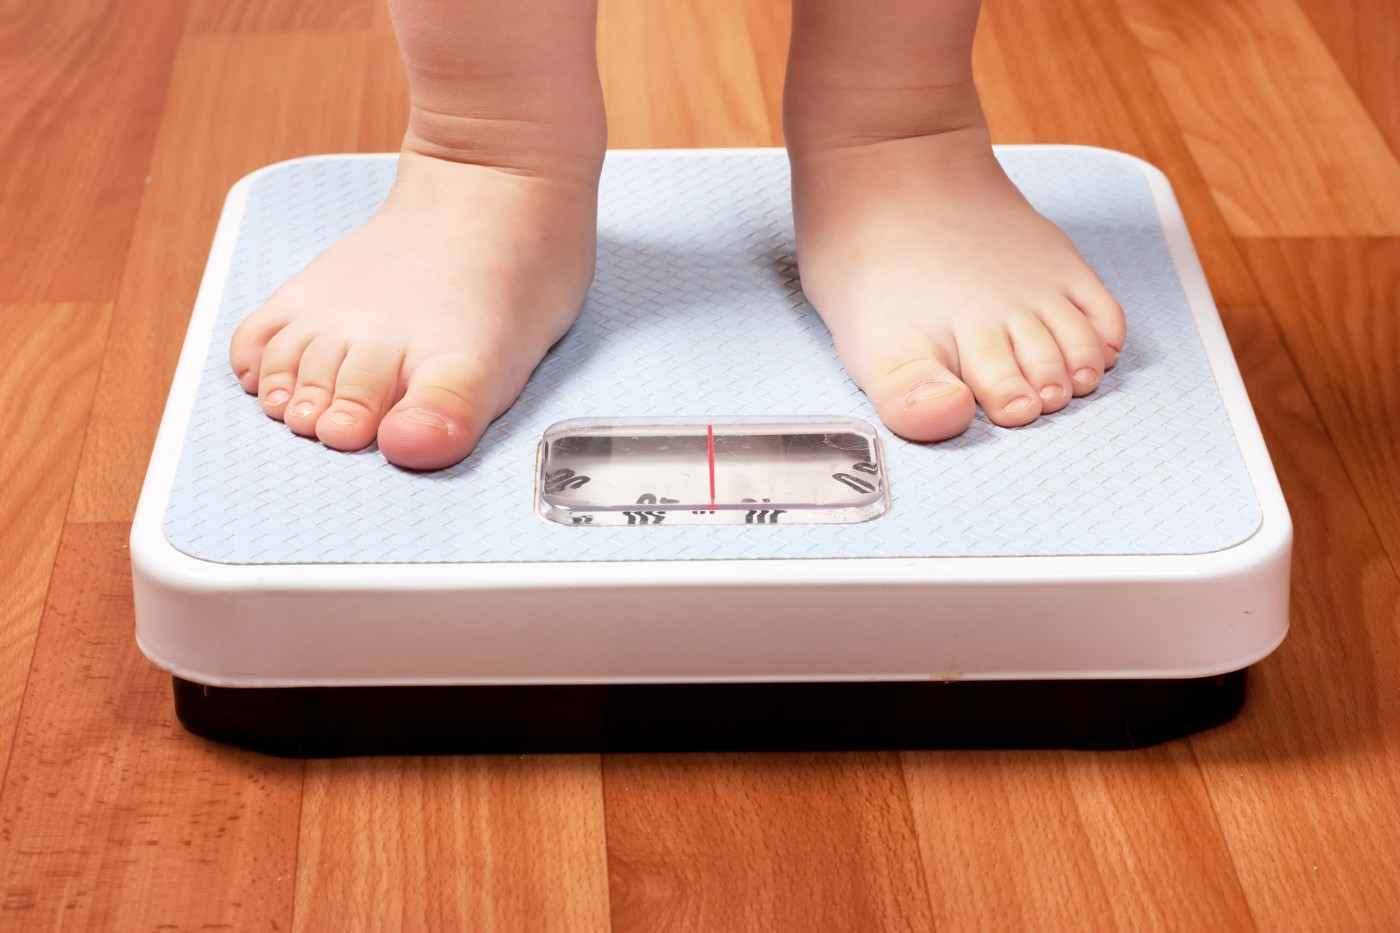 Most Physicians and Trainees Fail to Identify and Address Overweight and Obese Children, Study Shows